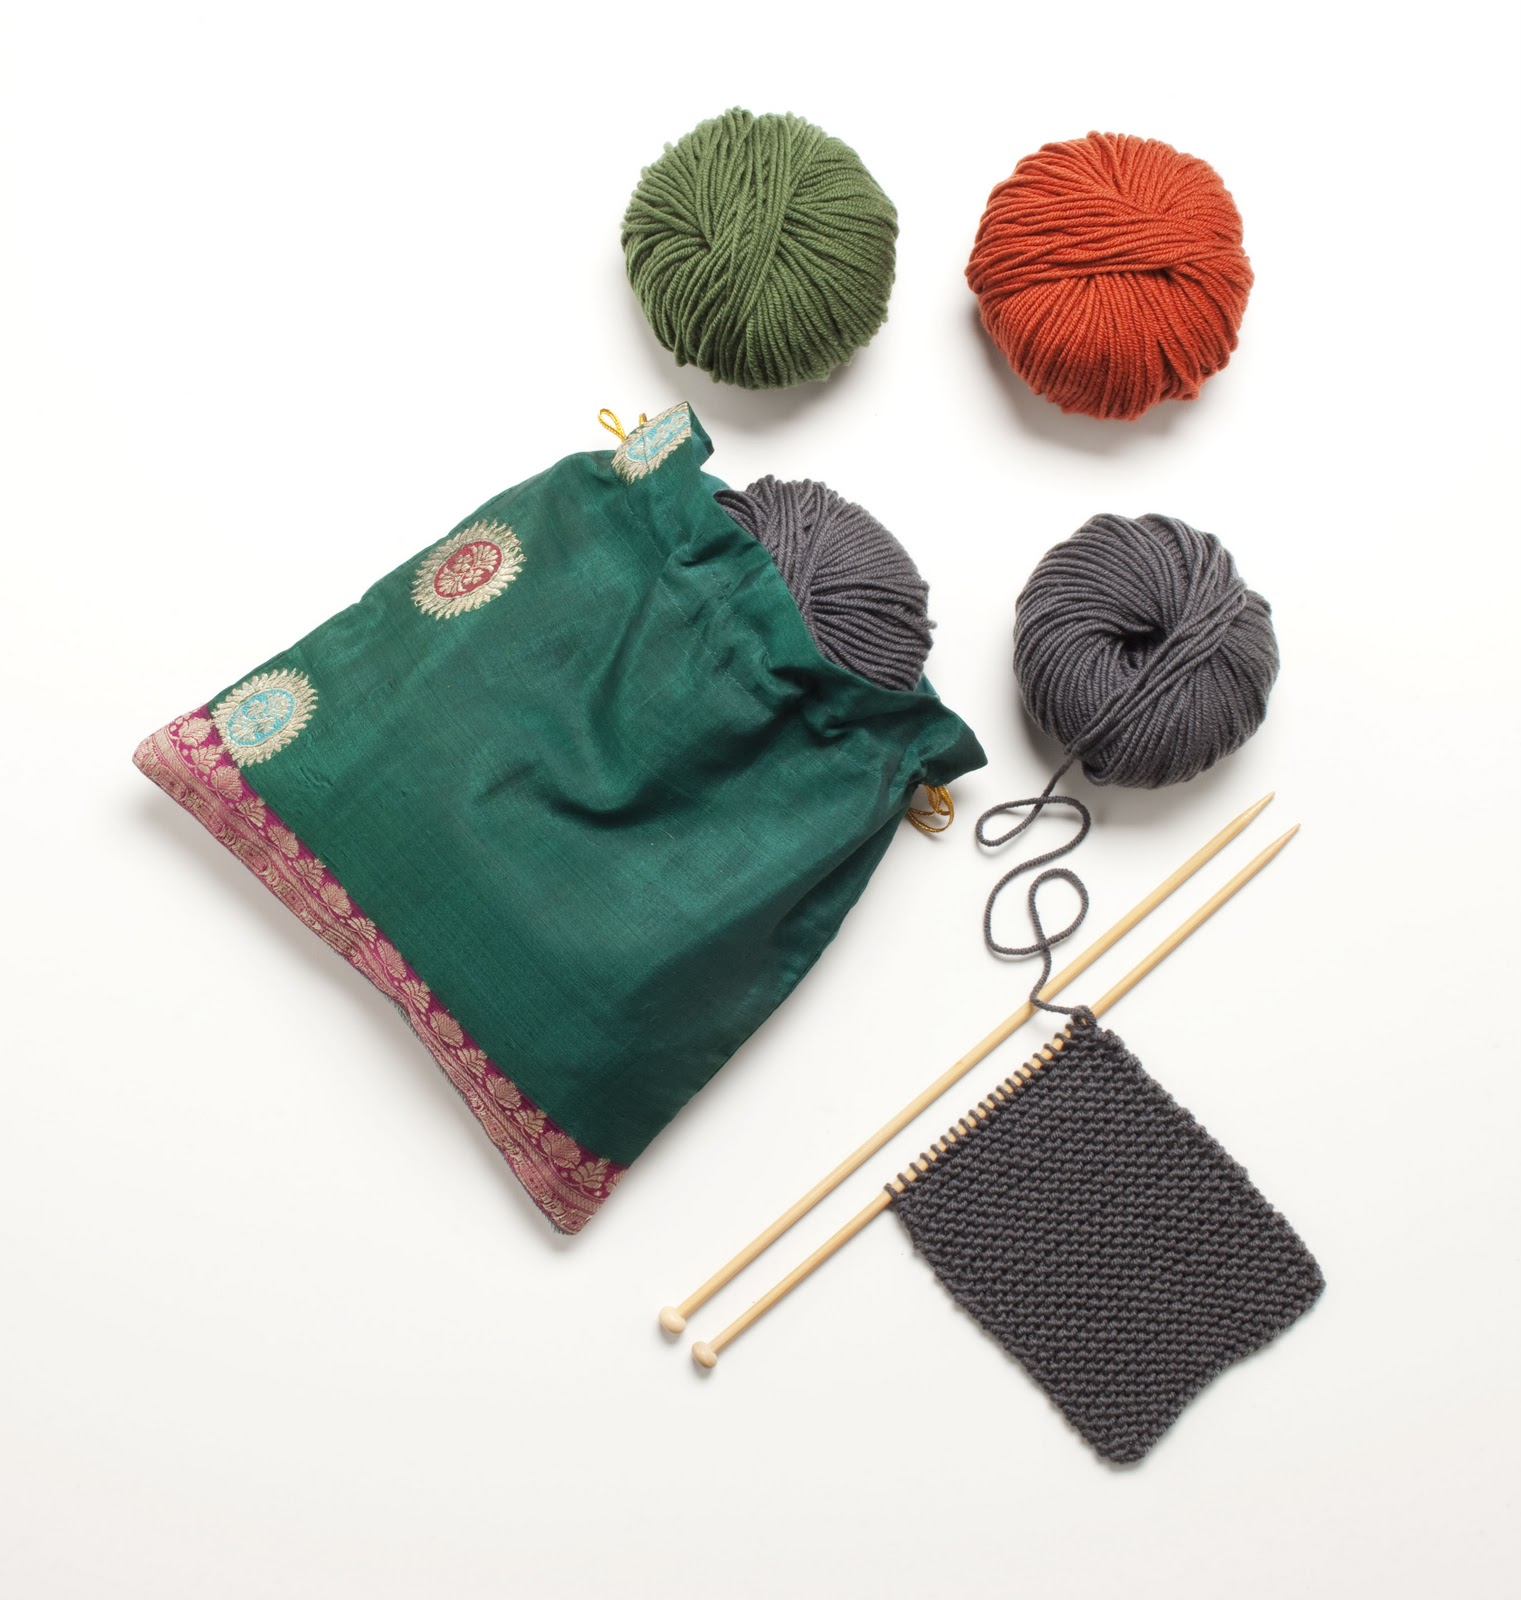 Knitting Project Bags For Sale : Charity projects bags for sale knit peace